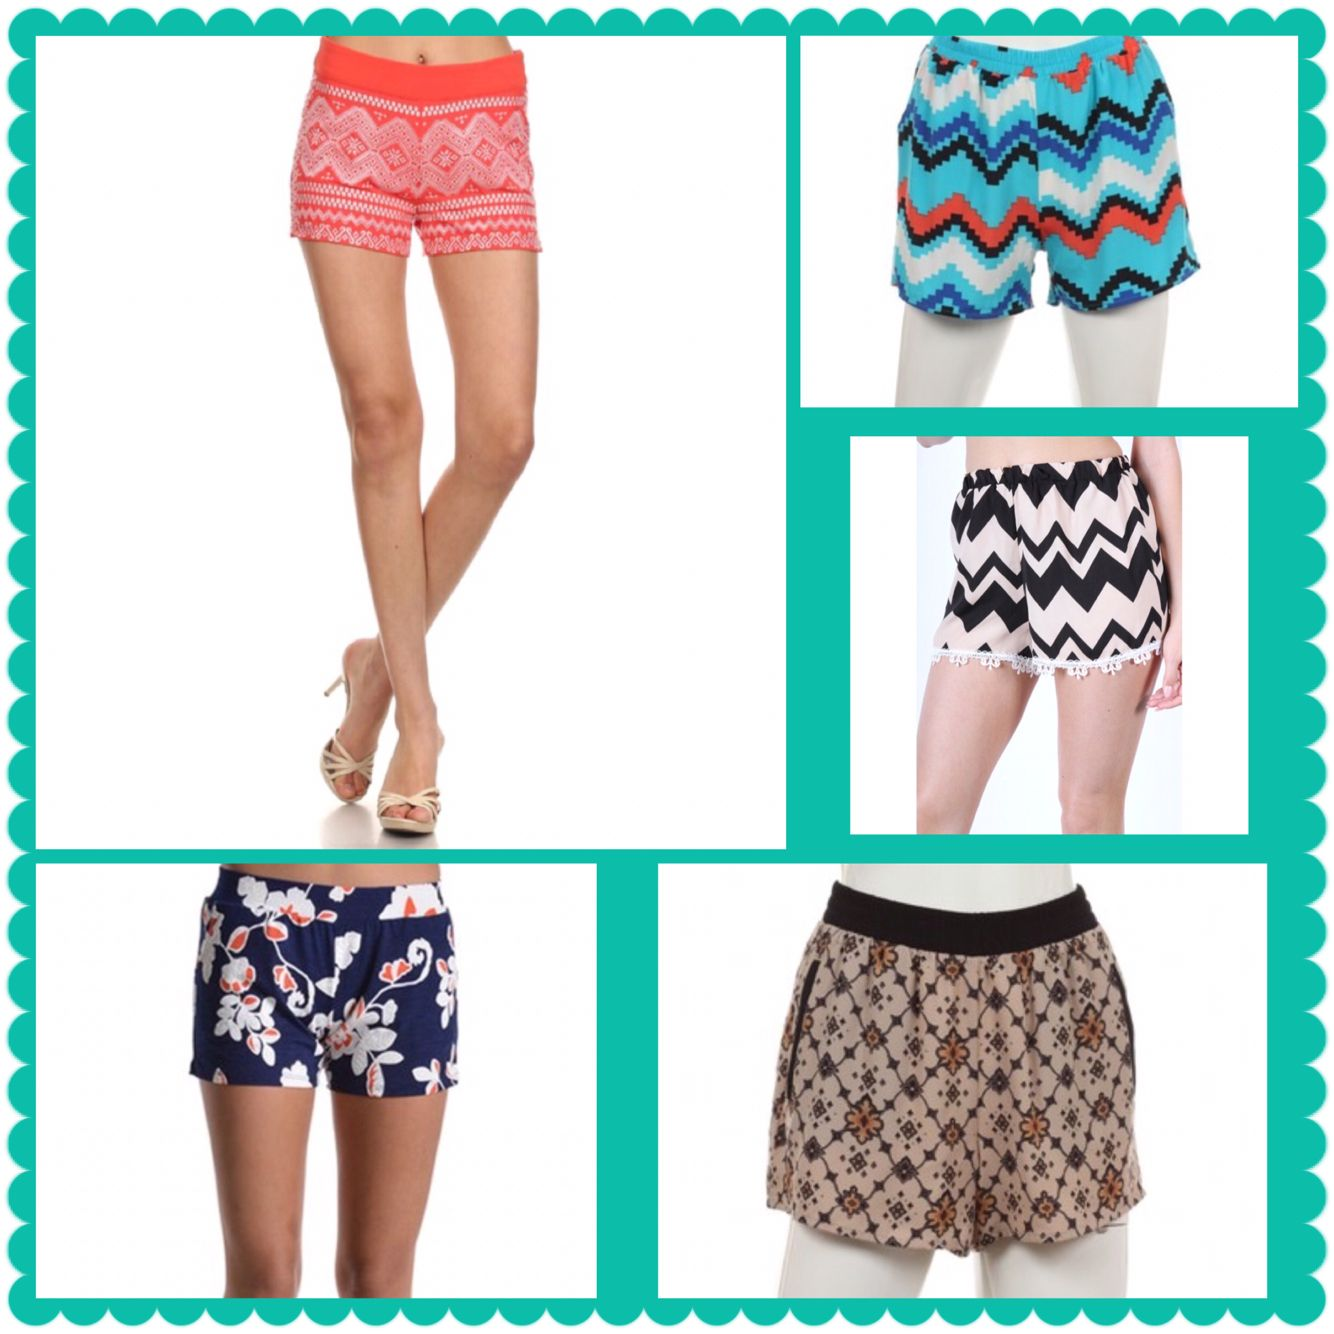 Check out these cute shorts. Dress them up or down. www.shoppsonline.com